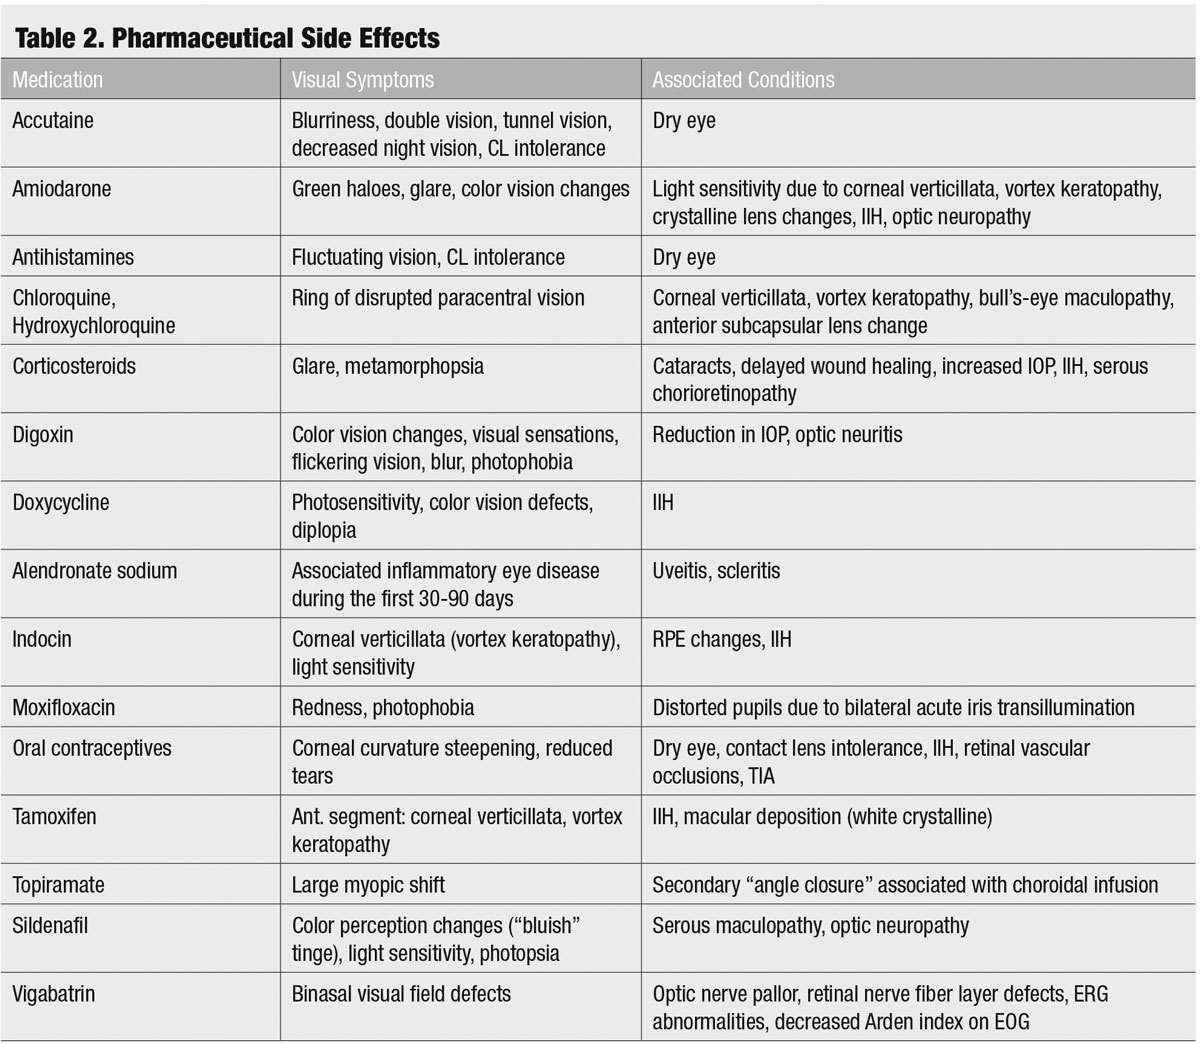 Table 2. Pharmaceutical Side Effects